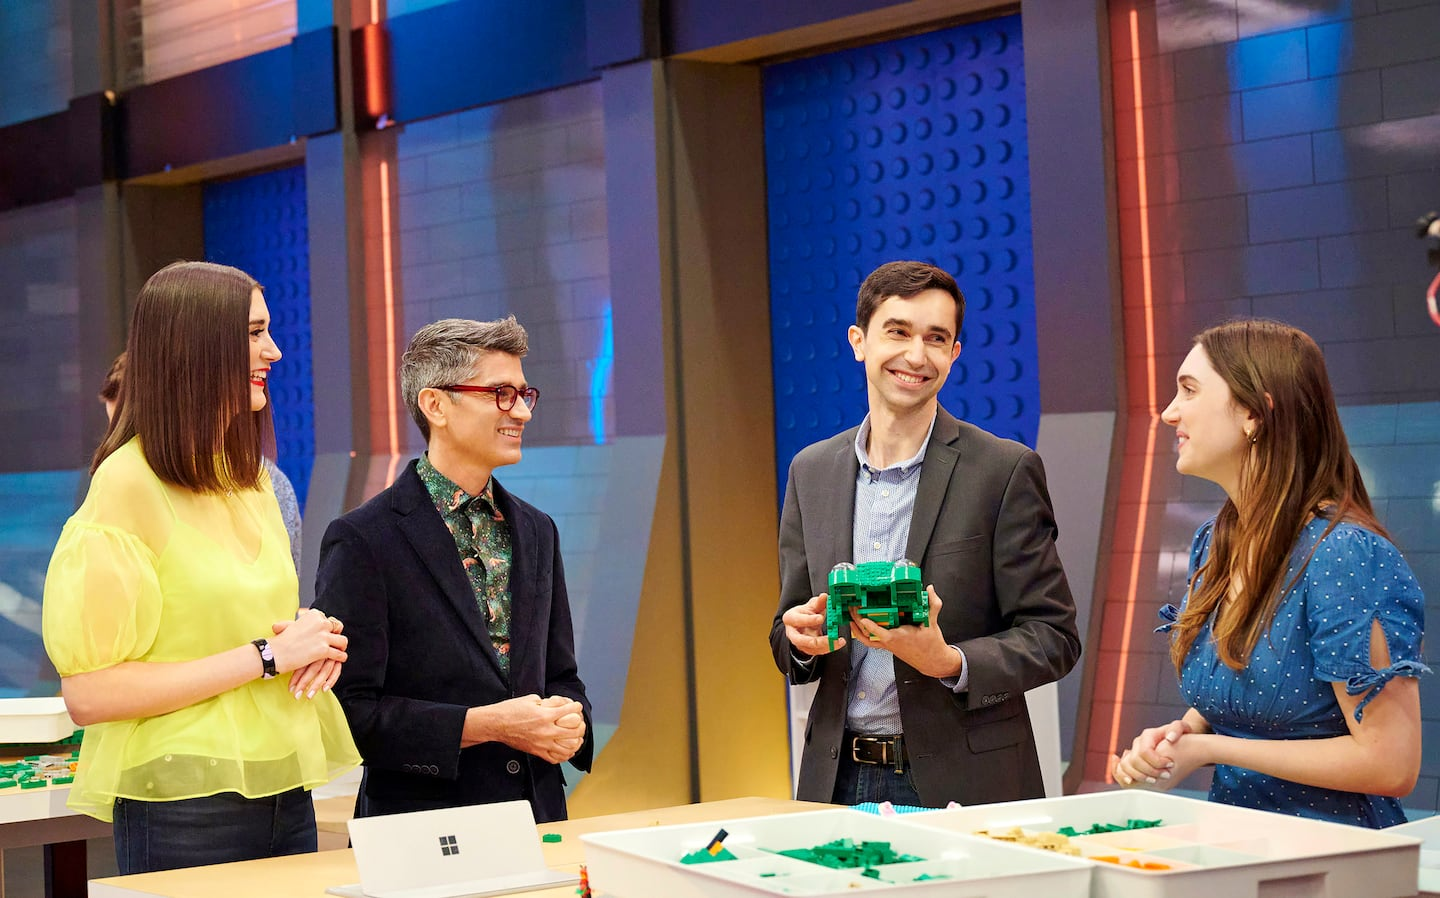 What to watch on Tuesday: 'Lego Masters' on Fox